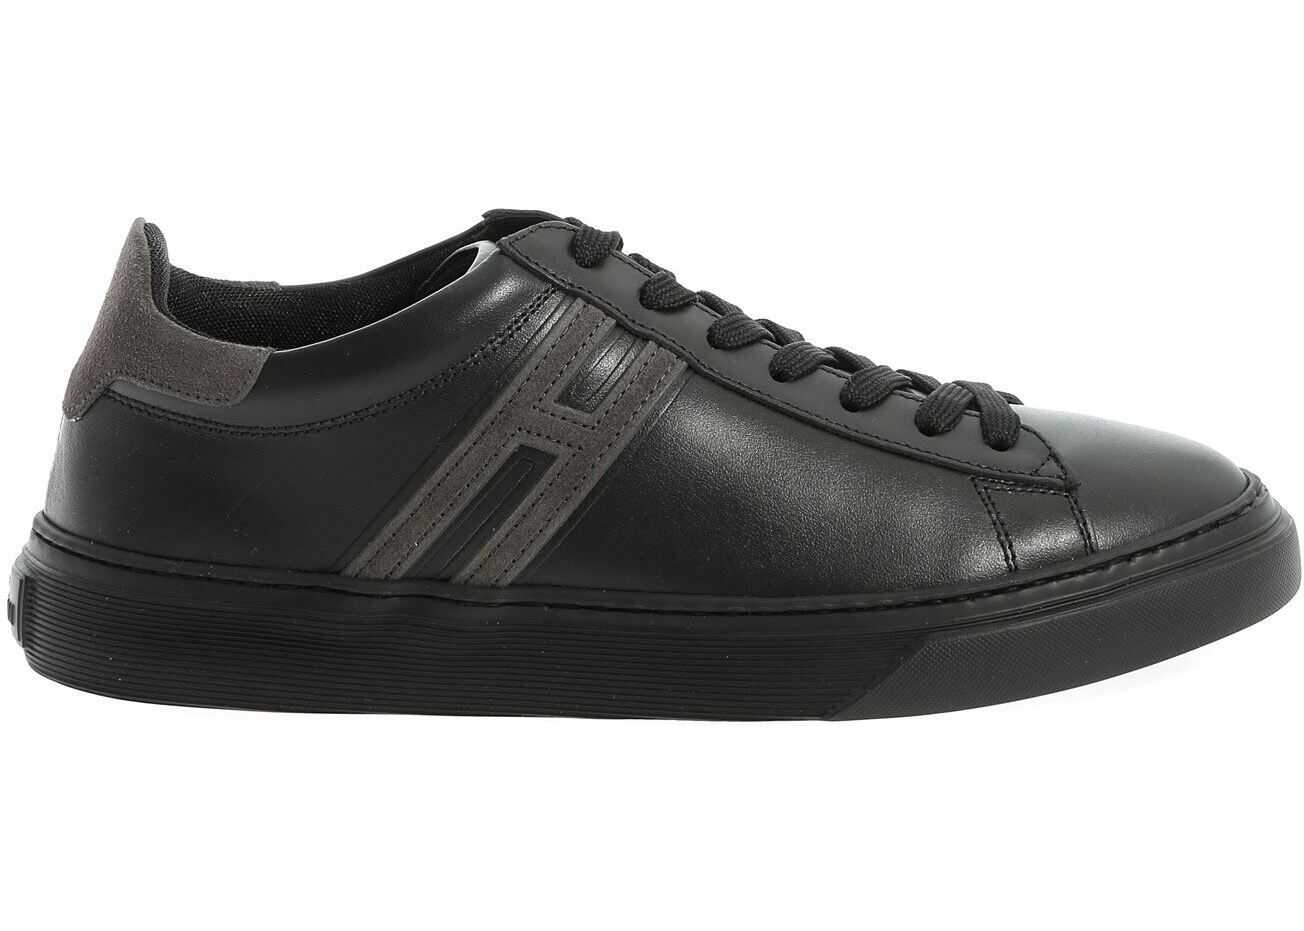 Hogan H365 Sneakers In Black And Gray Black